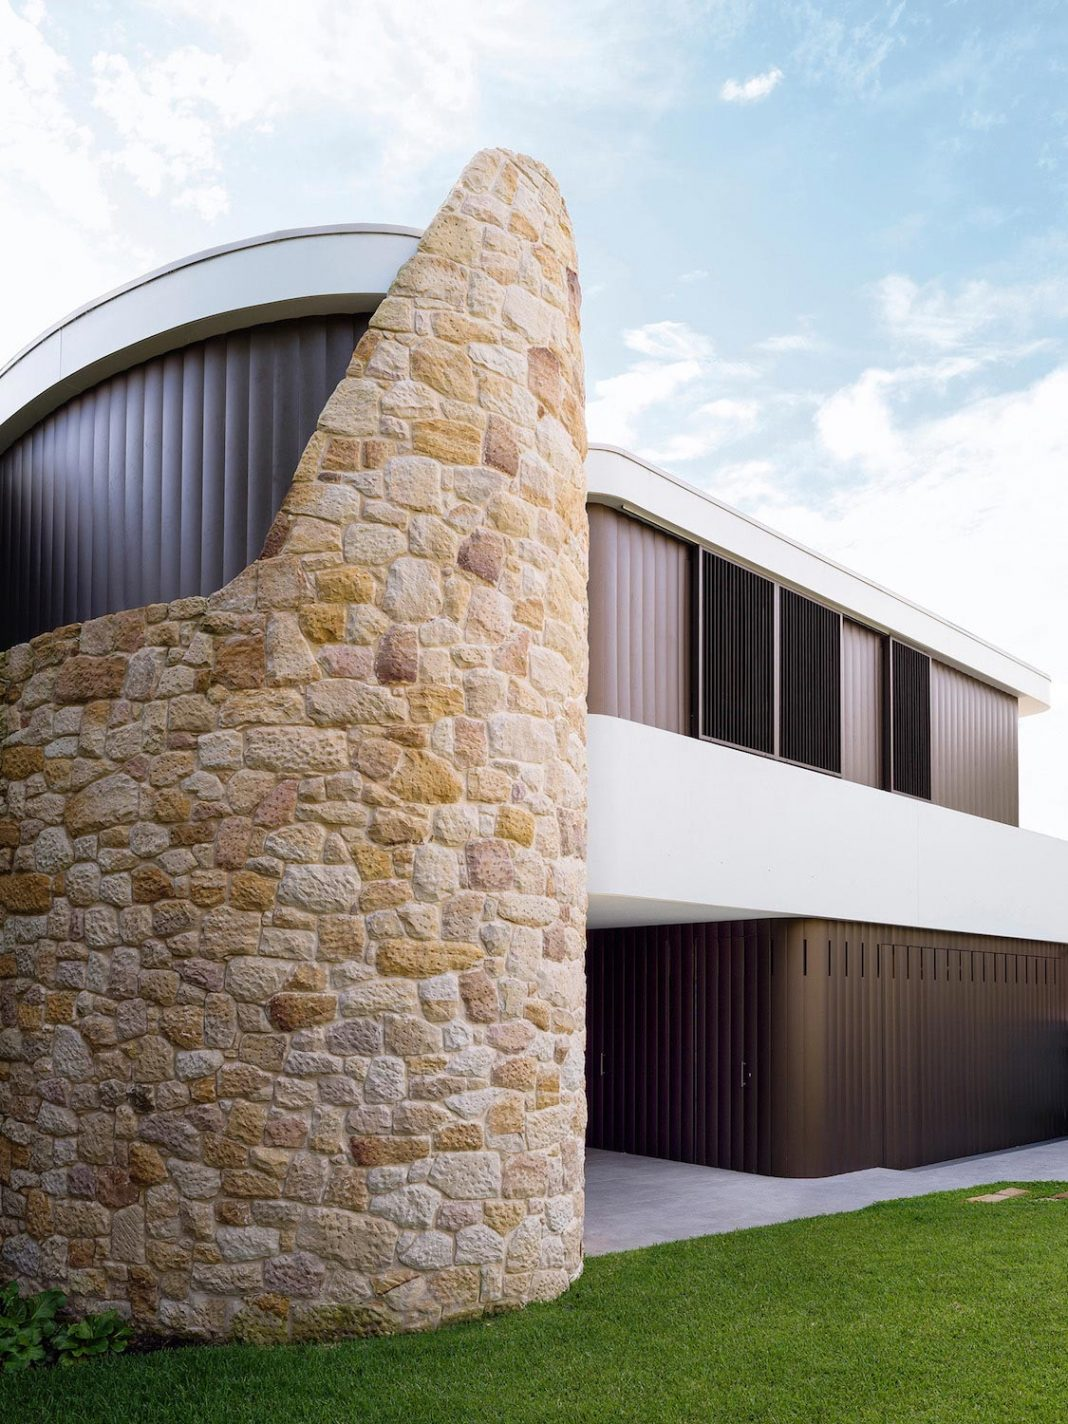 Martello Tower Home: the 3 storey brick house built in the early 60s gets contemporary additions